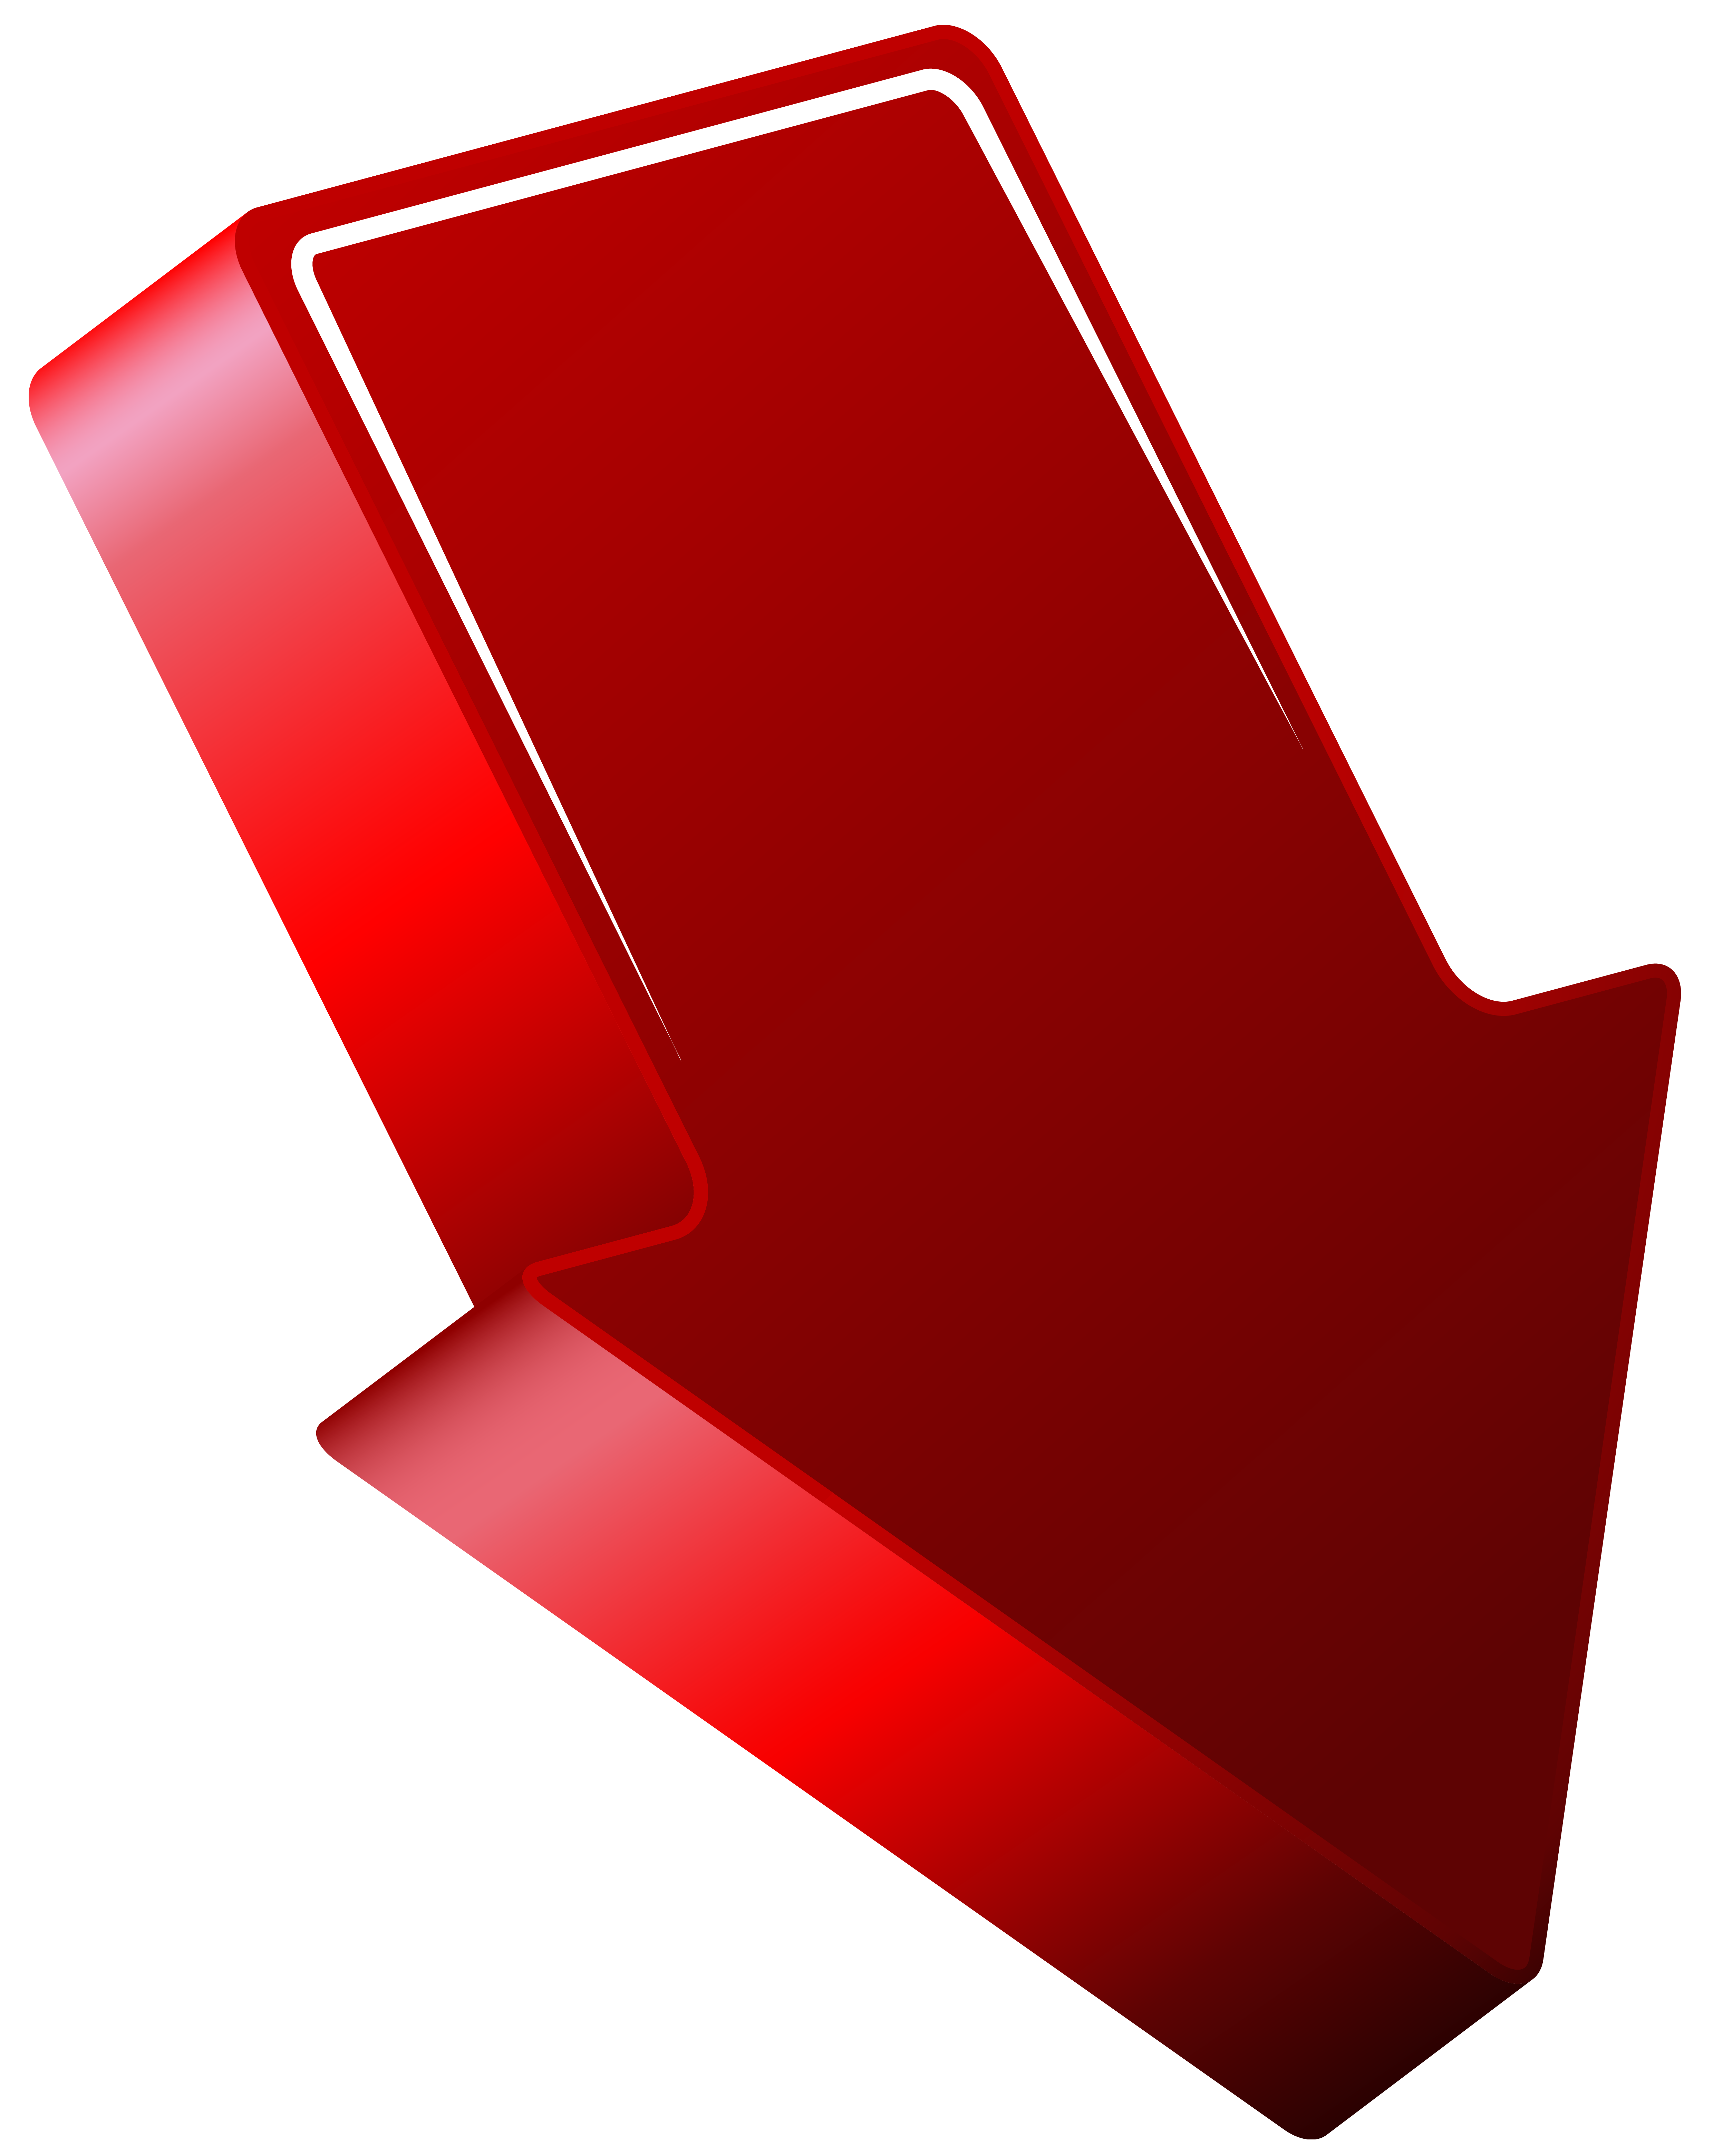 Red arrow transparent png. Clip art image gallery